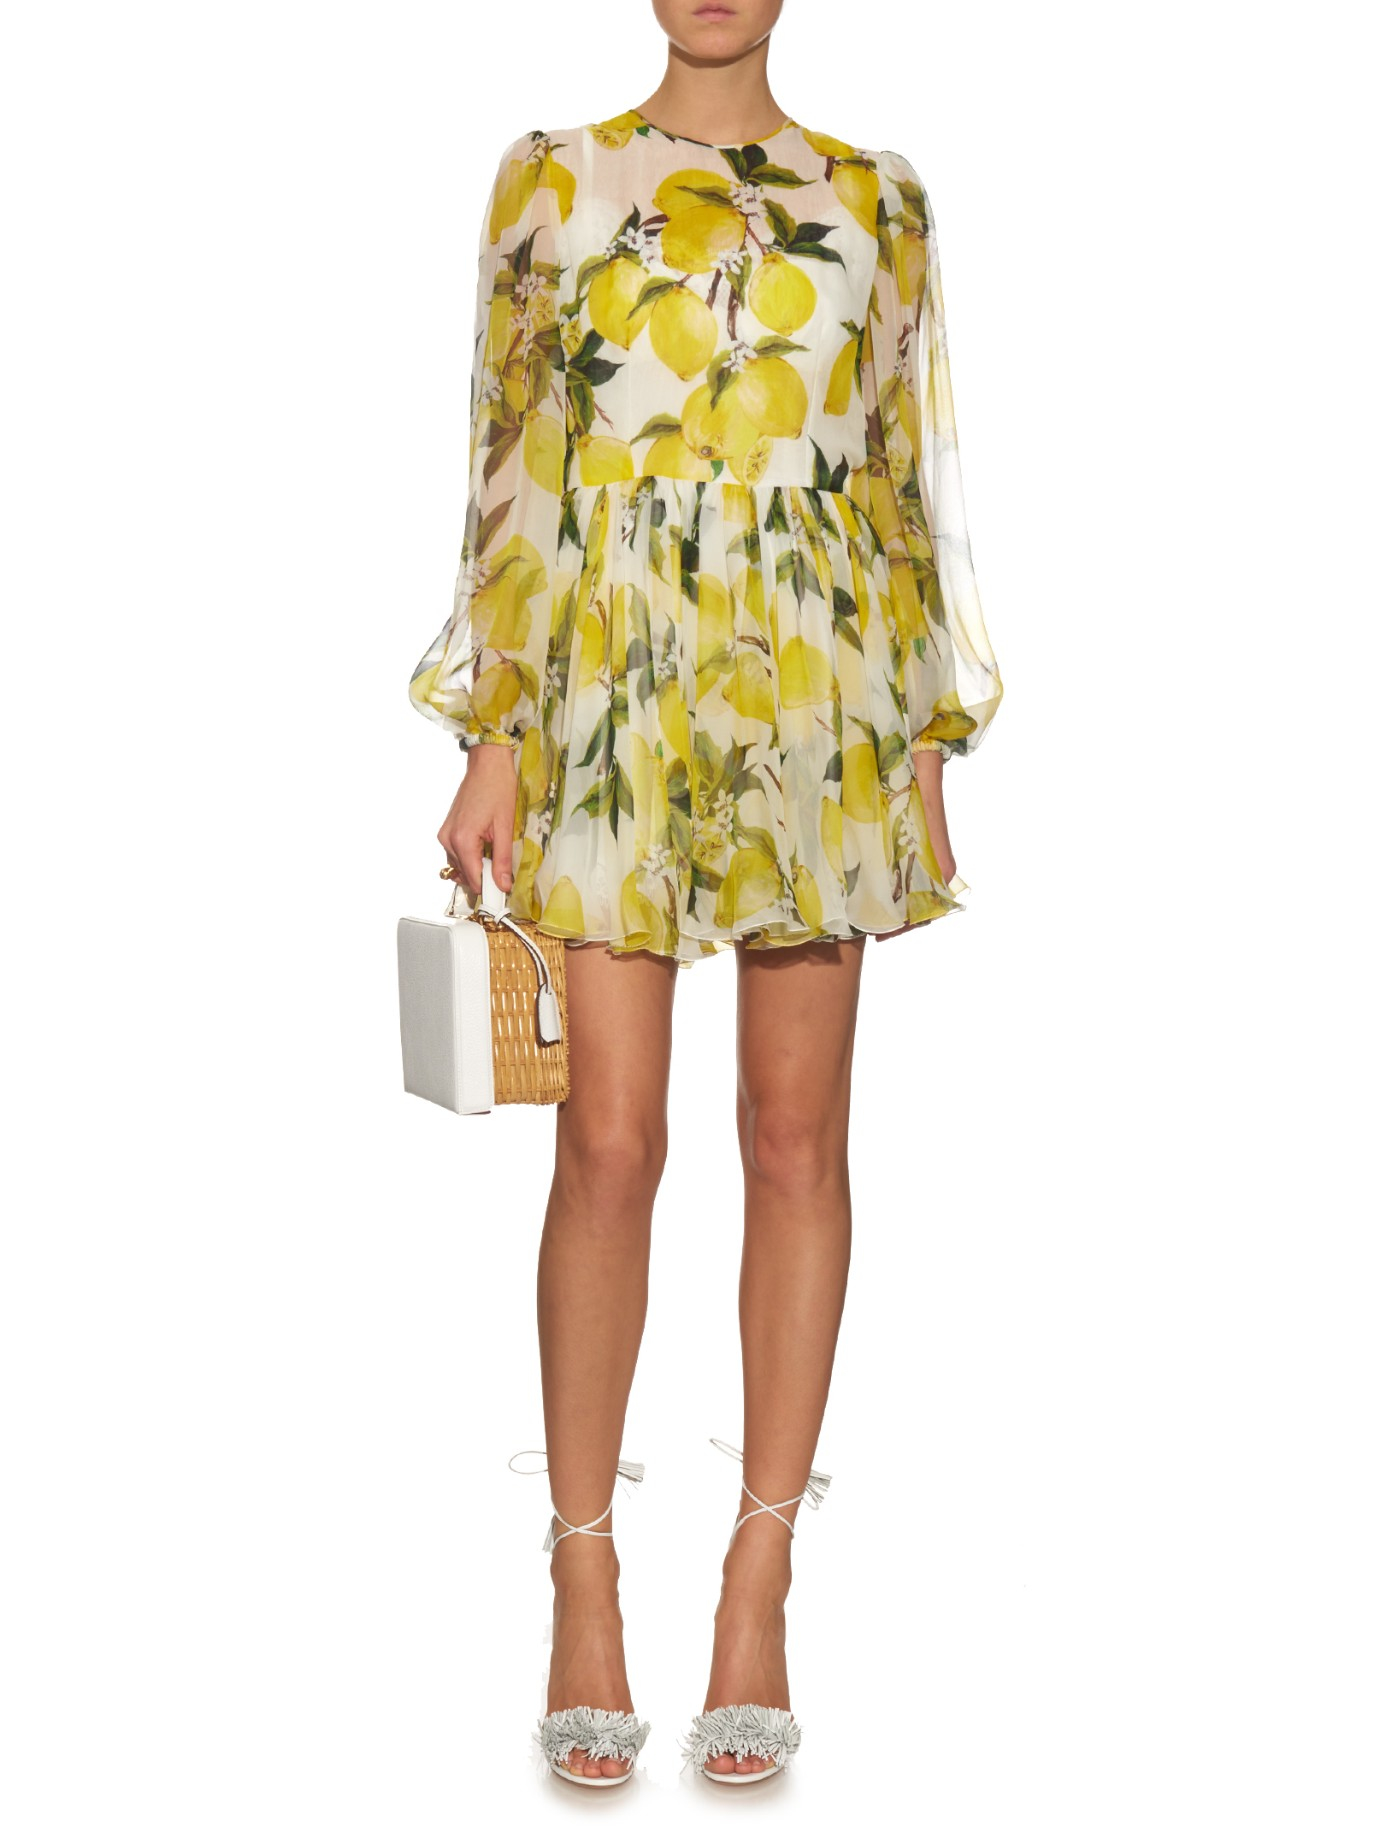 Lemon Chiffon Mini Dress